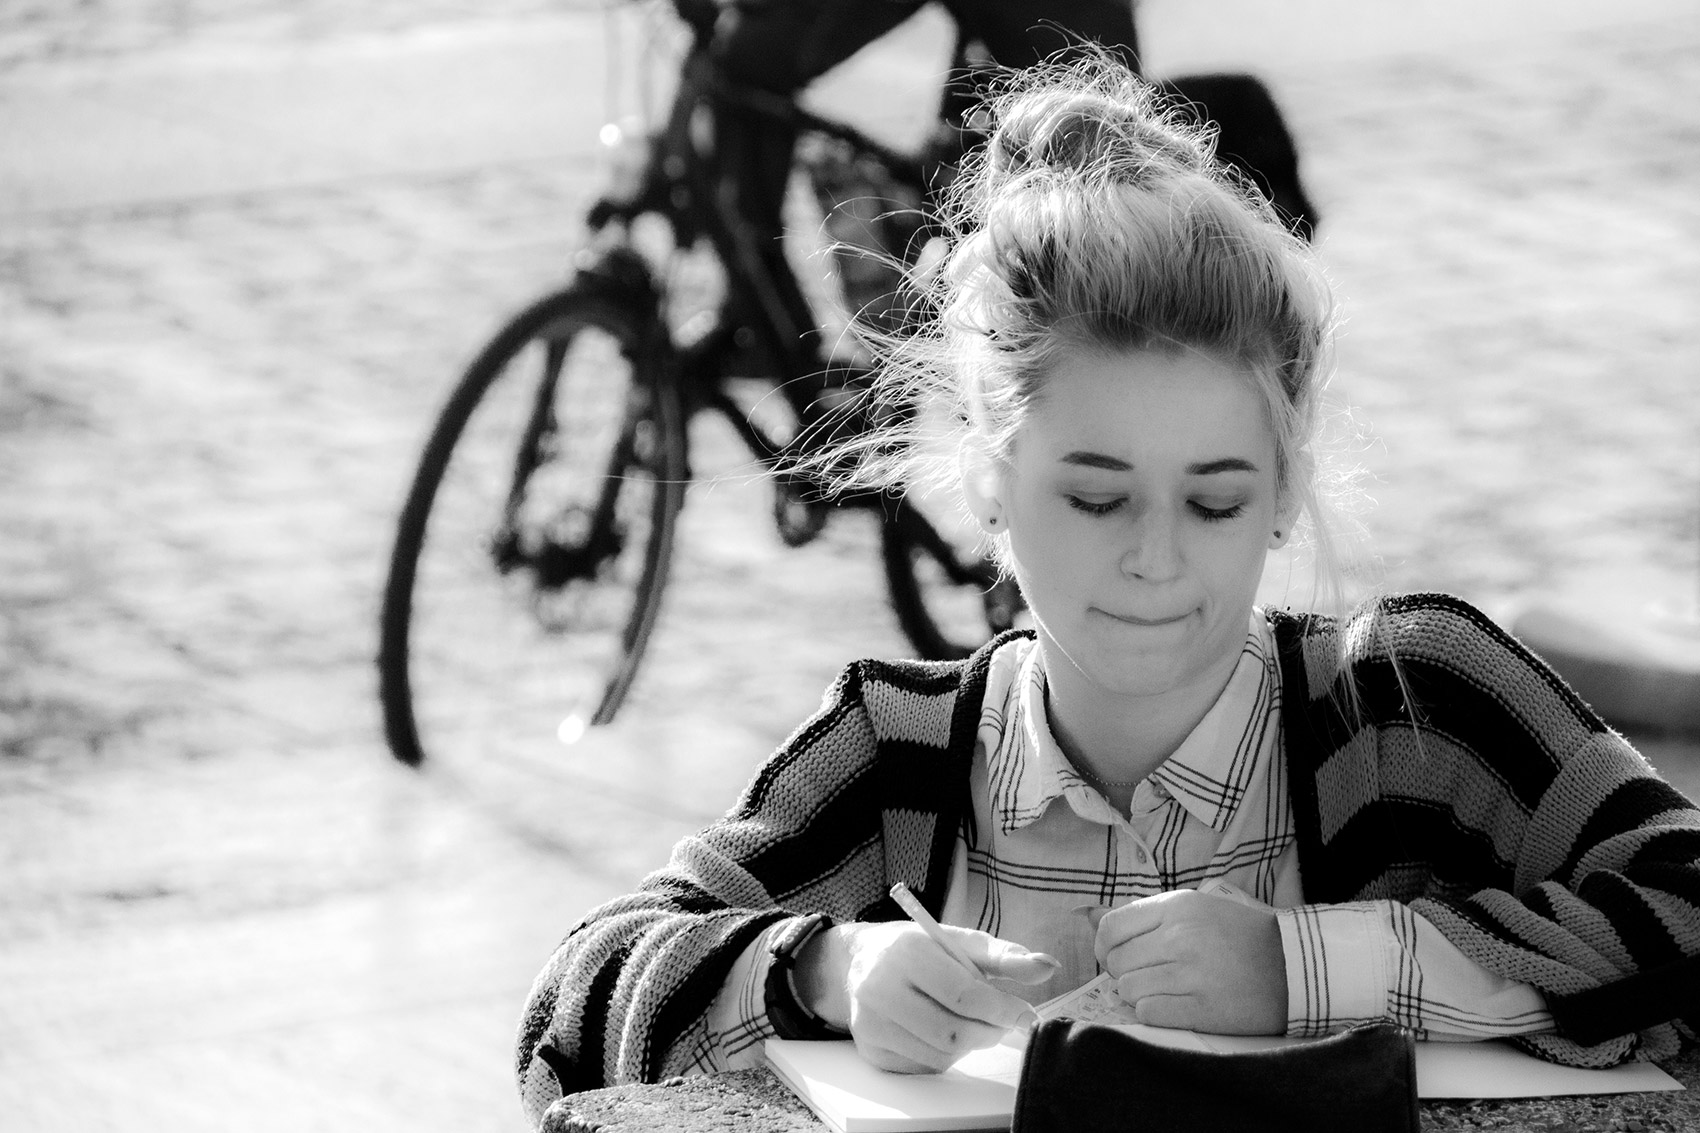 Young girl taking notes in central Rome